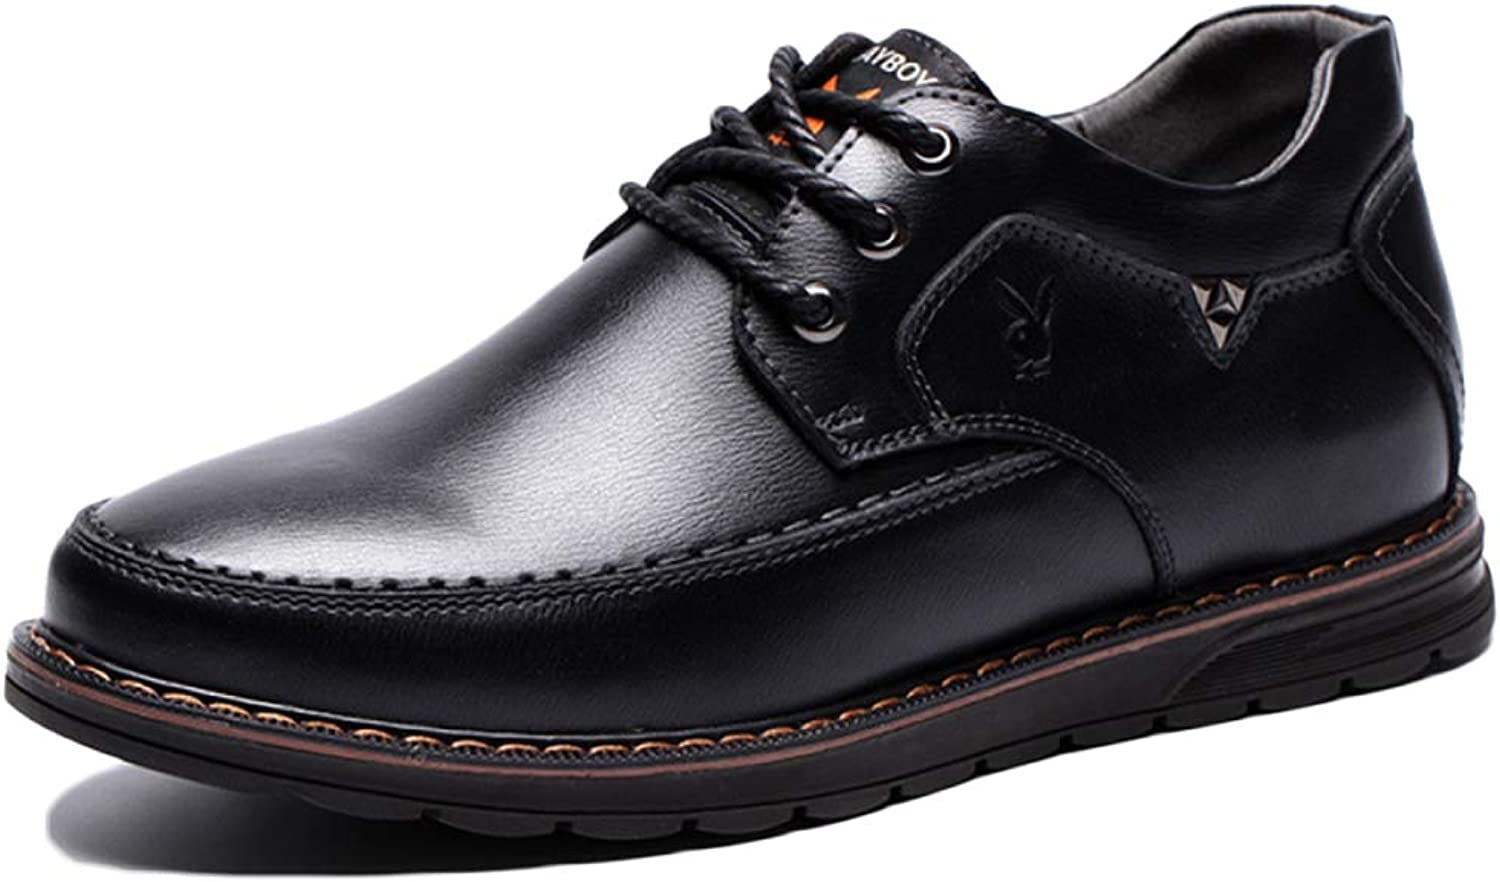 Snfgoij Mens Dress shoes Black Formal Business Pointed Fashion Lace-up Autumn Winter Leather shoes Men's Leather shoes